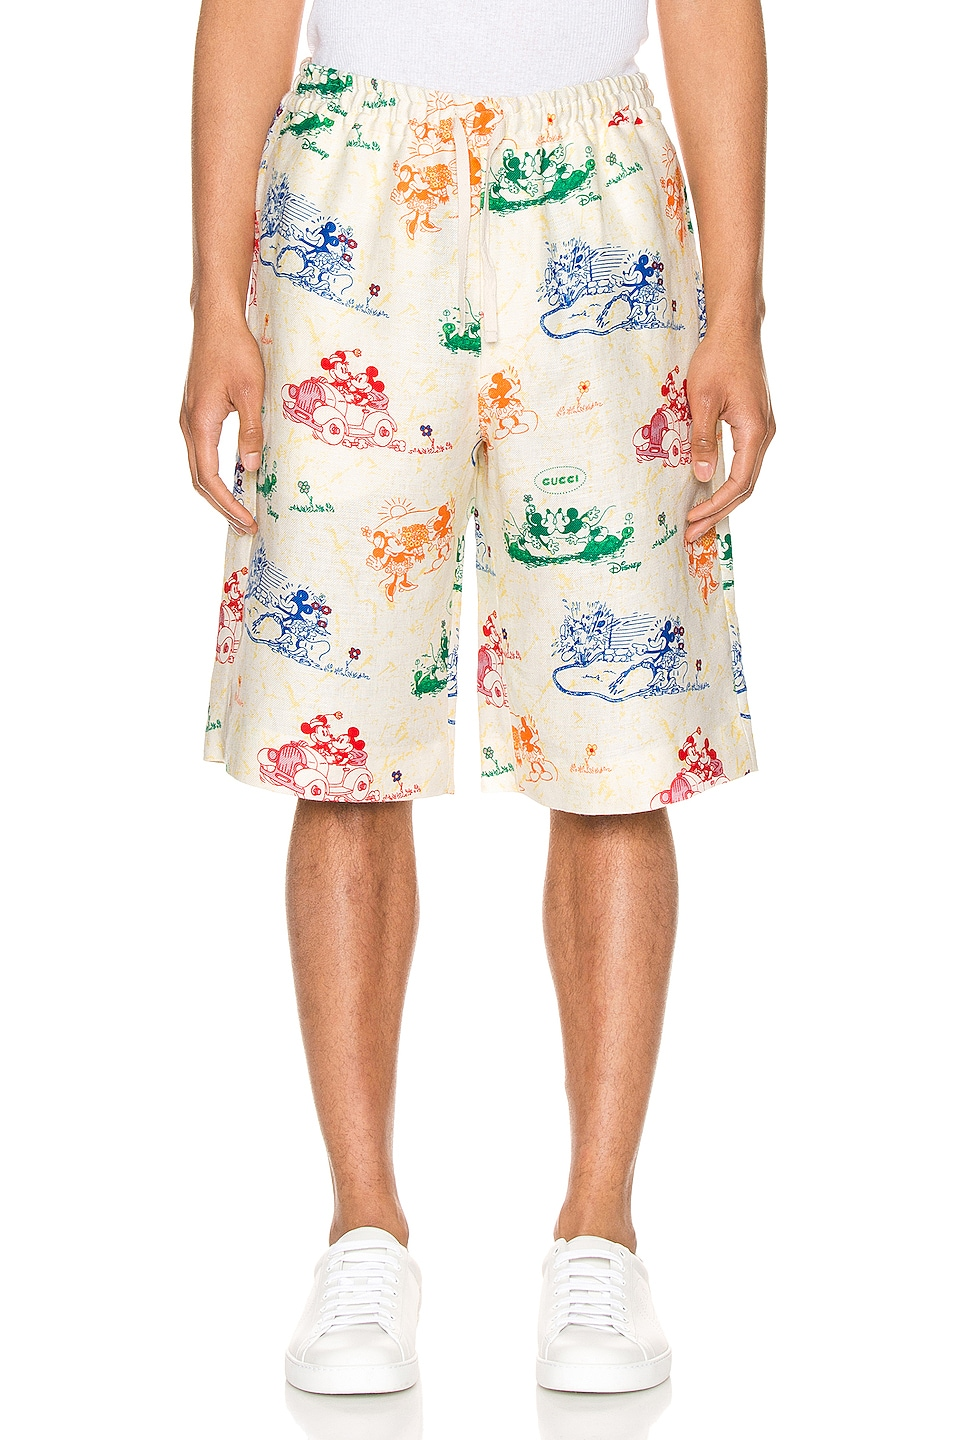 Image 1 of Gucci x Disney Linen Shorts in Ivory & Yard Print